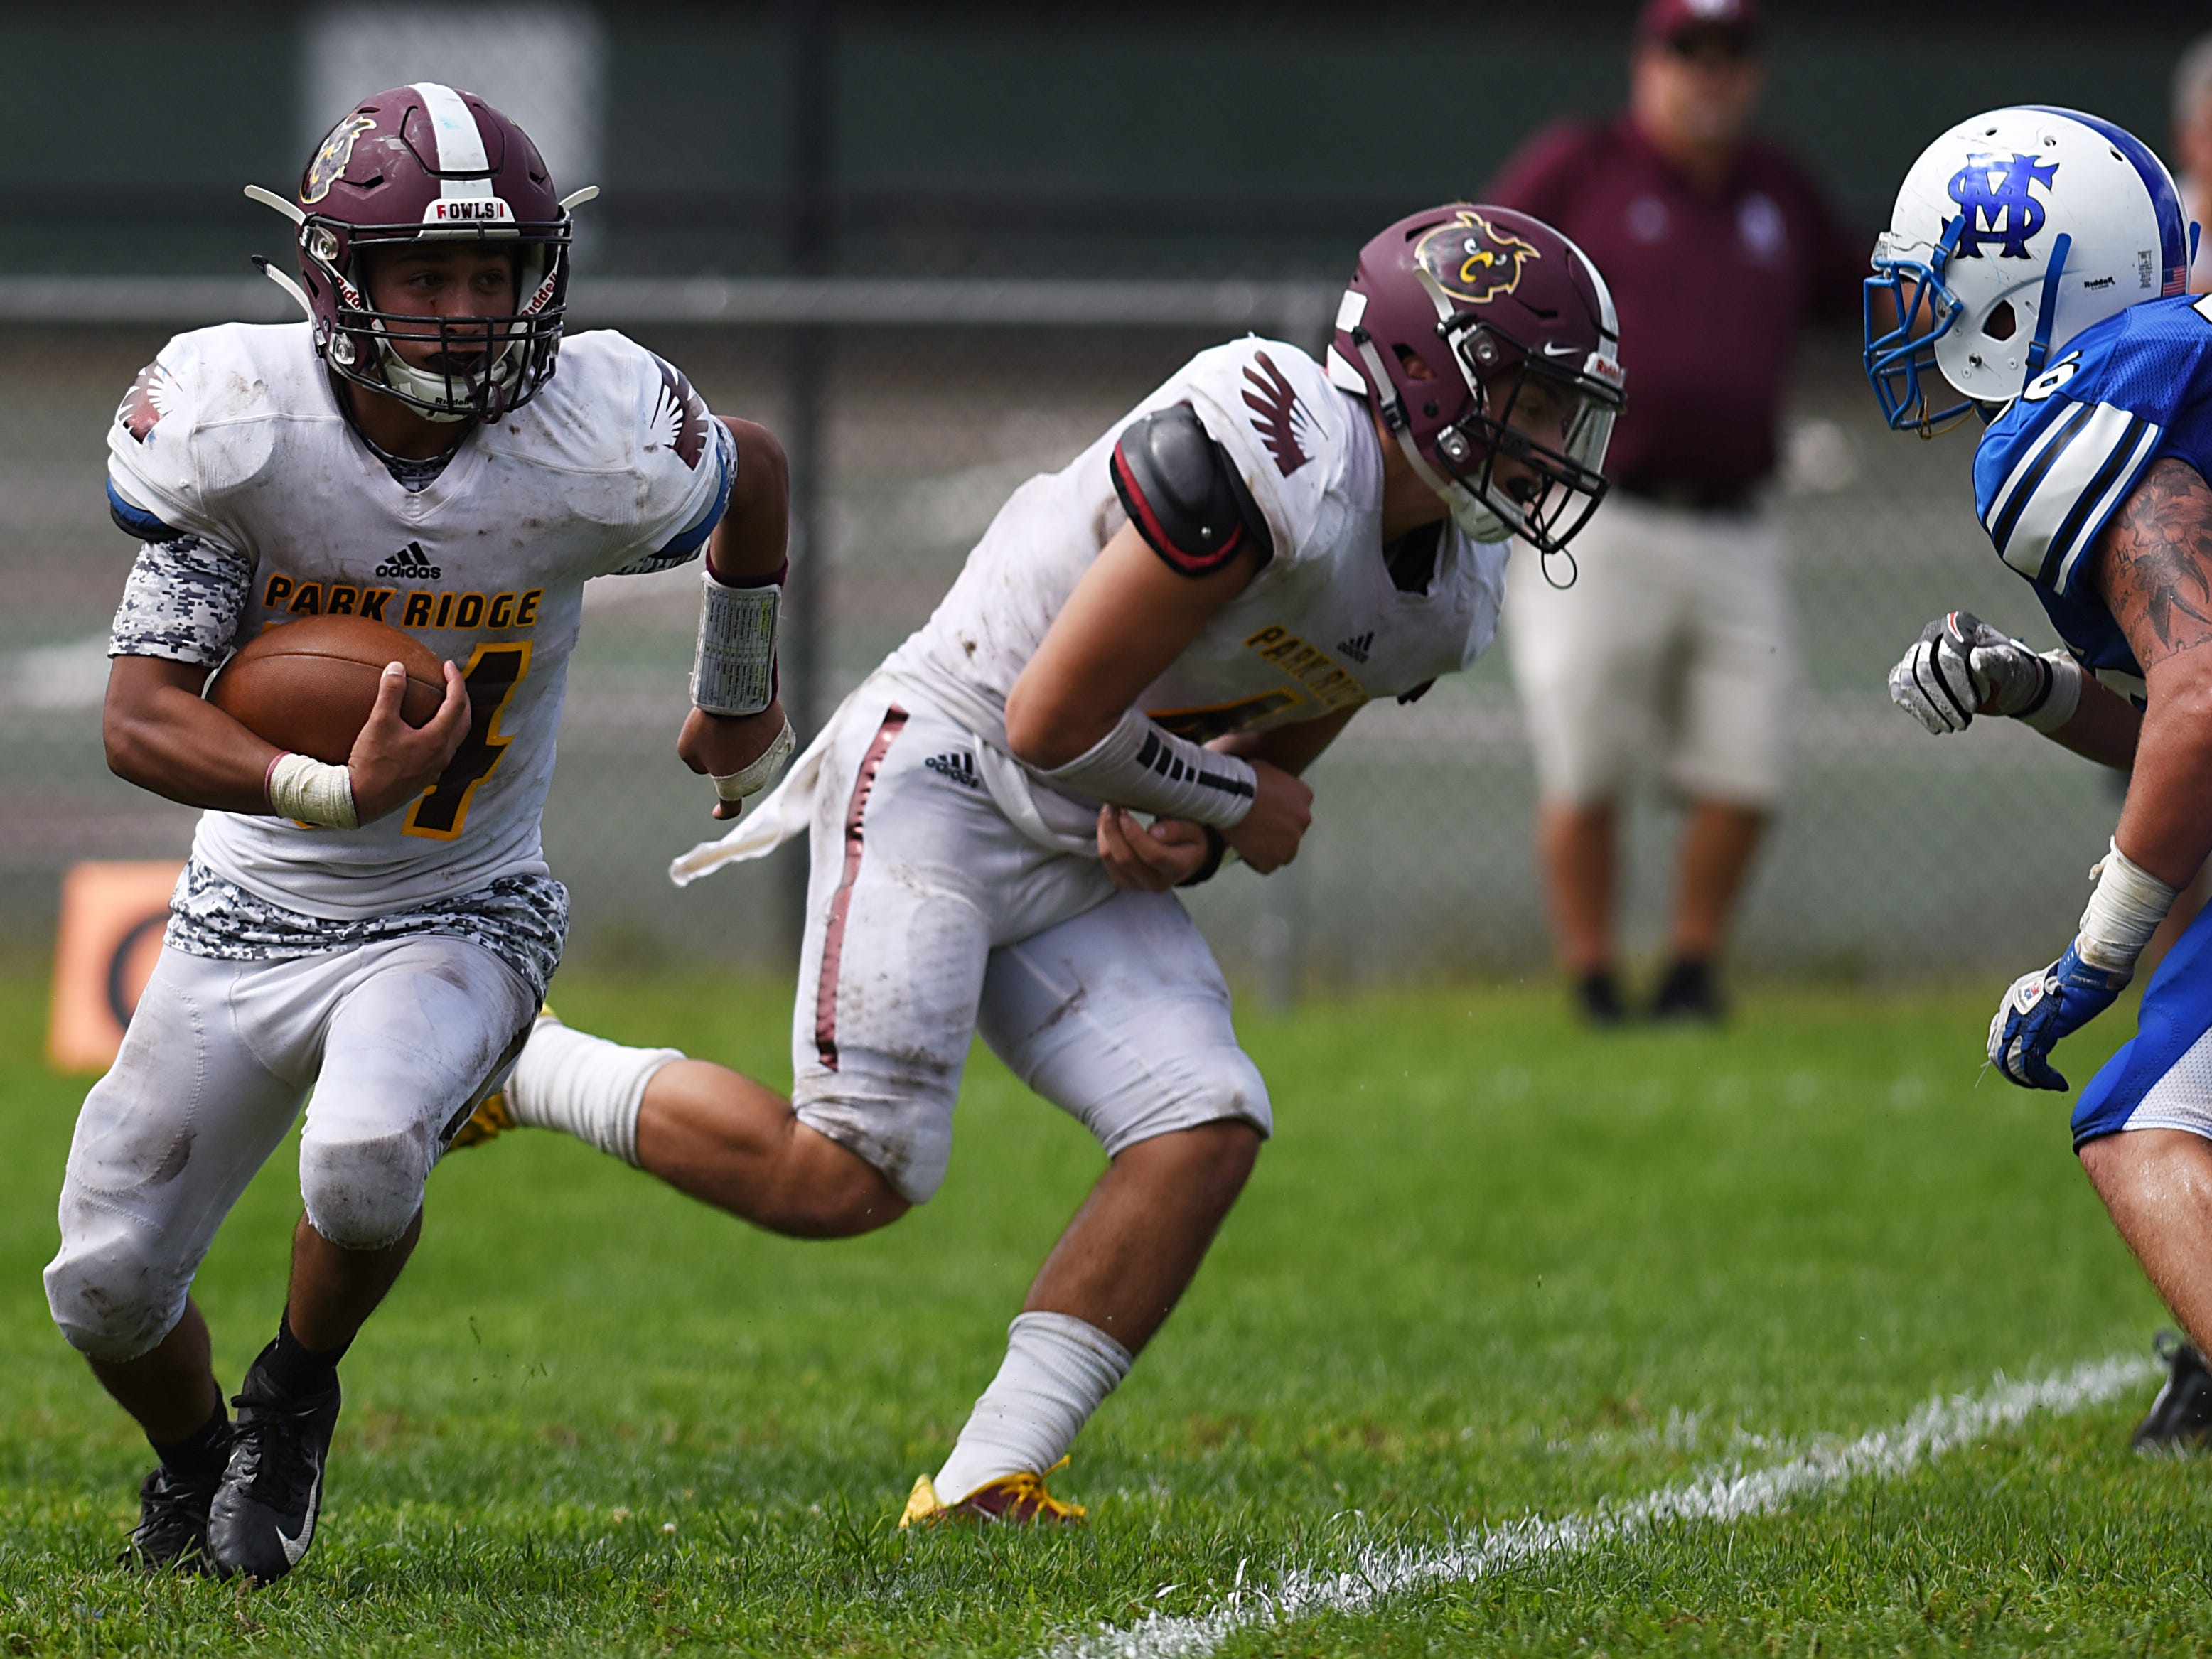 High school football game between Park Ridge and St. Mary at Tamblyn Field in Rutherford on Saturday September 15, 2018. (From left) PR#24 Raman Marcus, PR#4 Vincent Pinto and SM#66 Christopher Buchta.